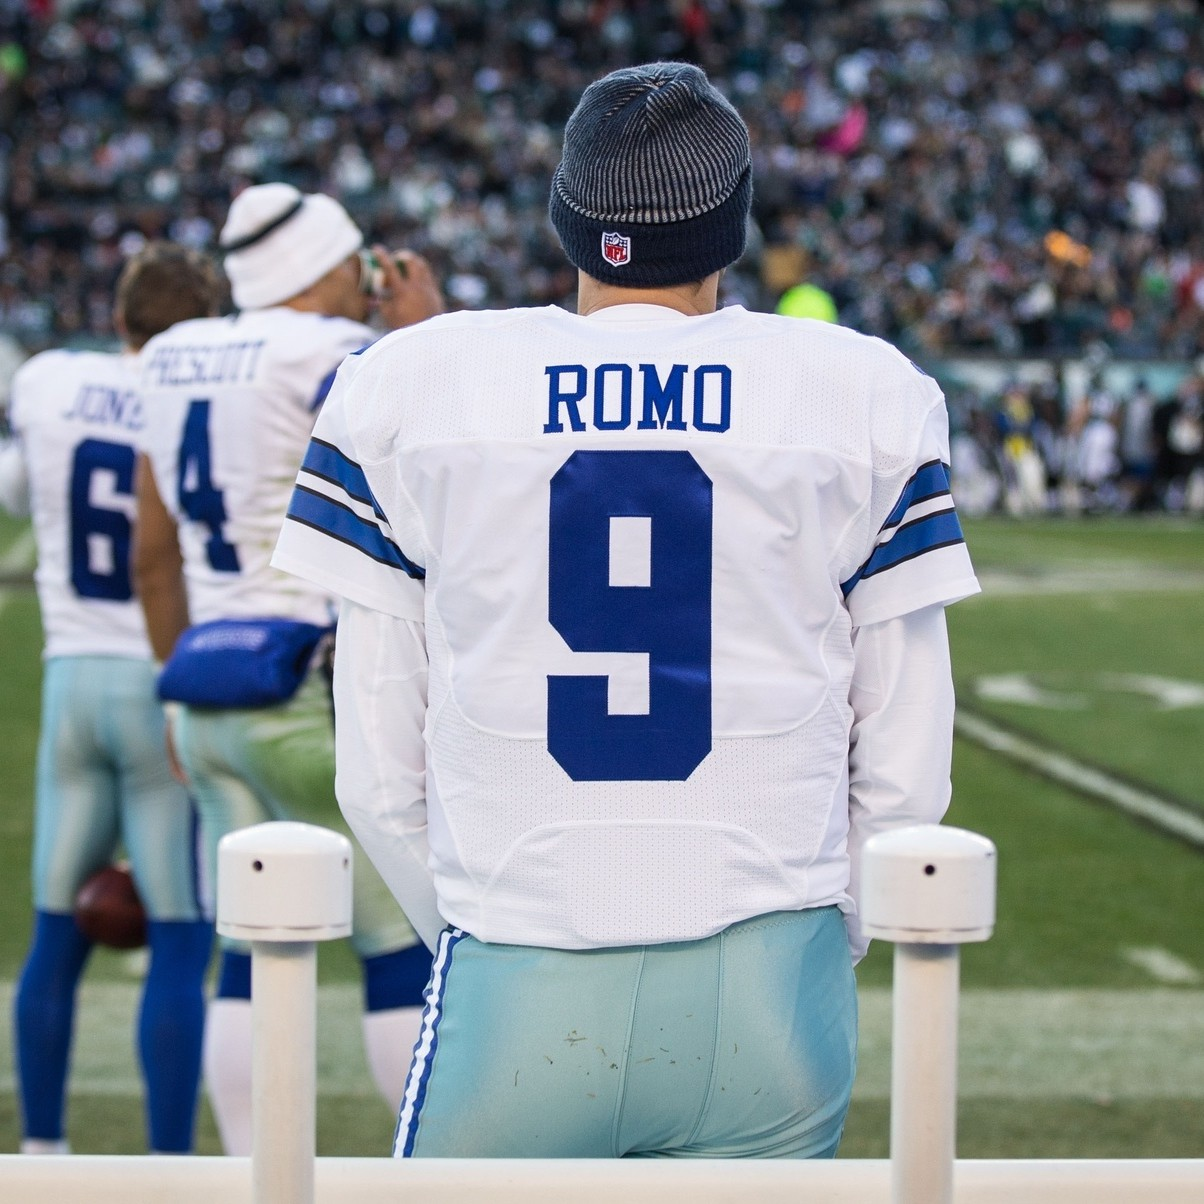 Farewell-to-tony-romo-who-proved-football-isnt-a-meritocracy-after-all-1489160387.jpg?crop=0